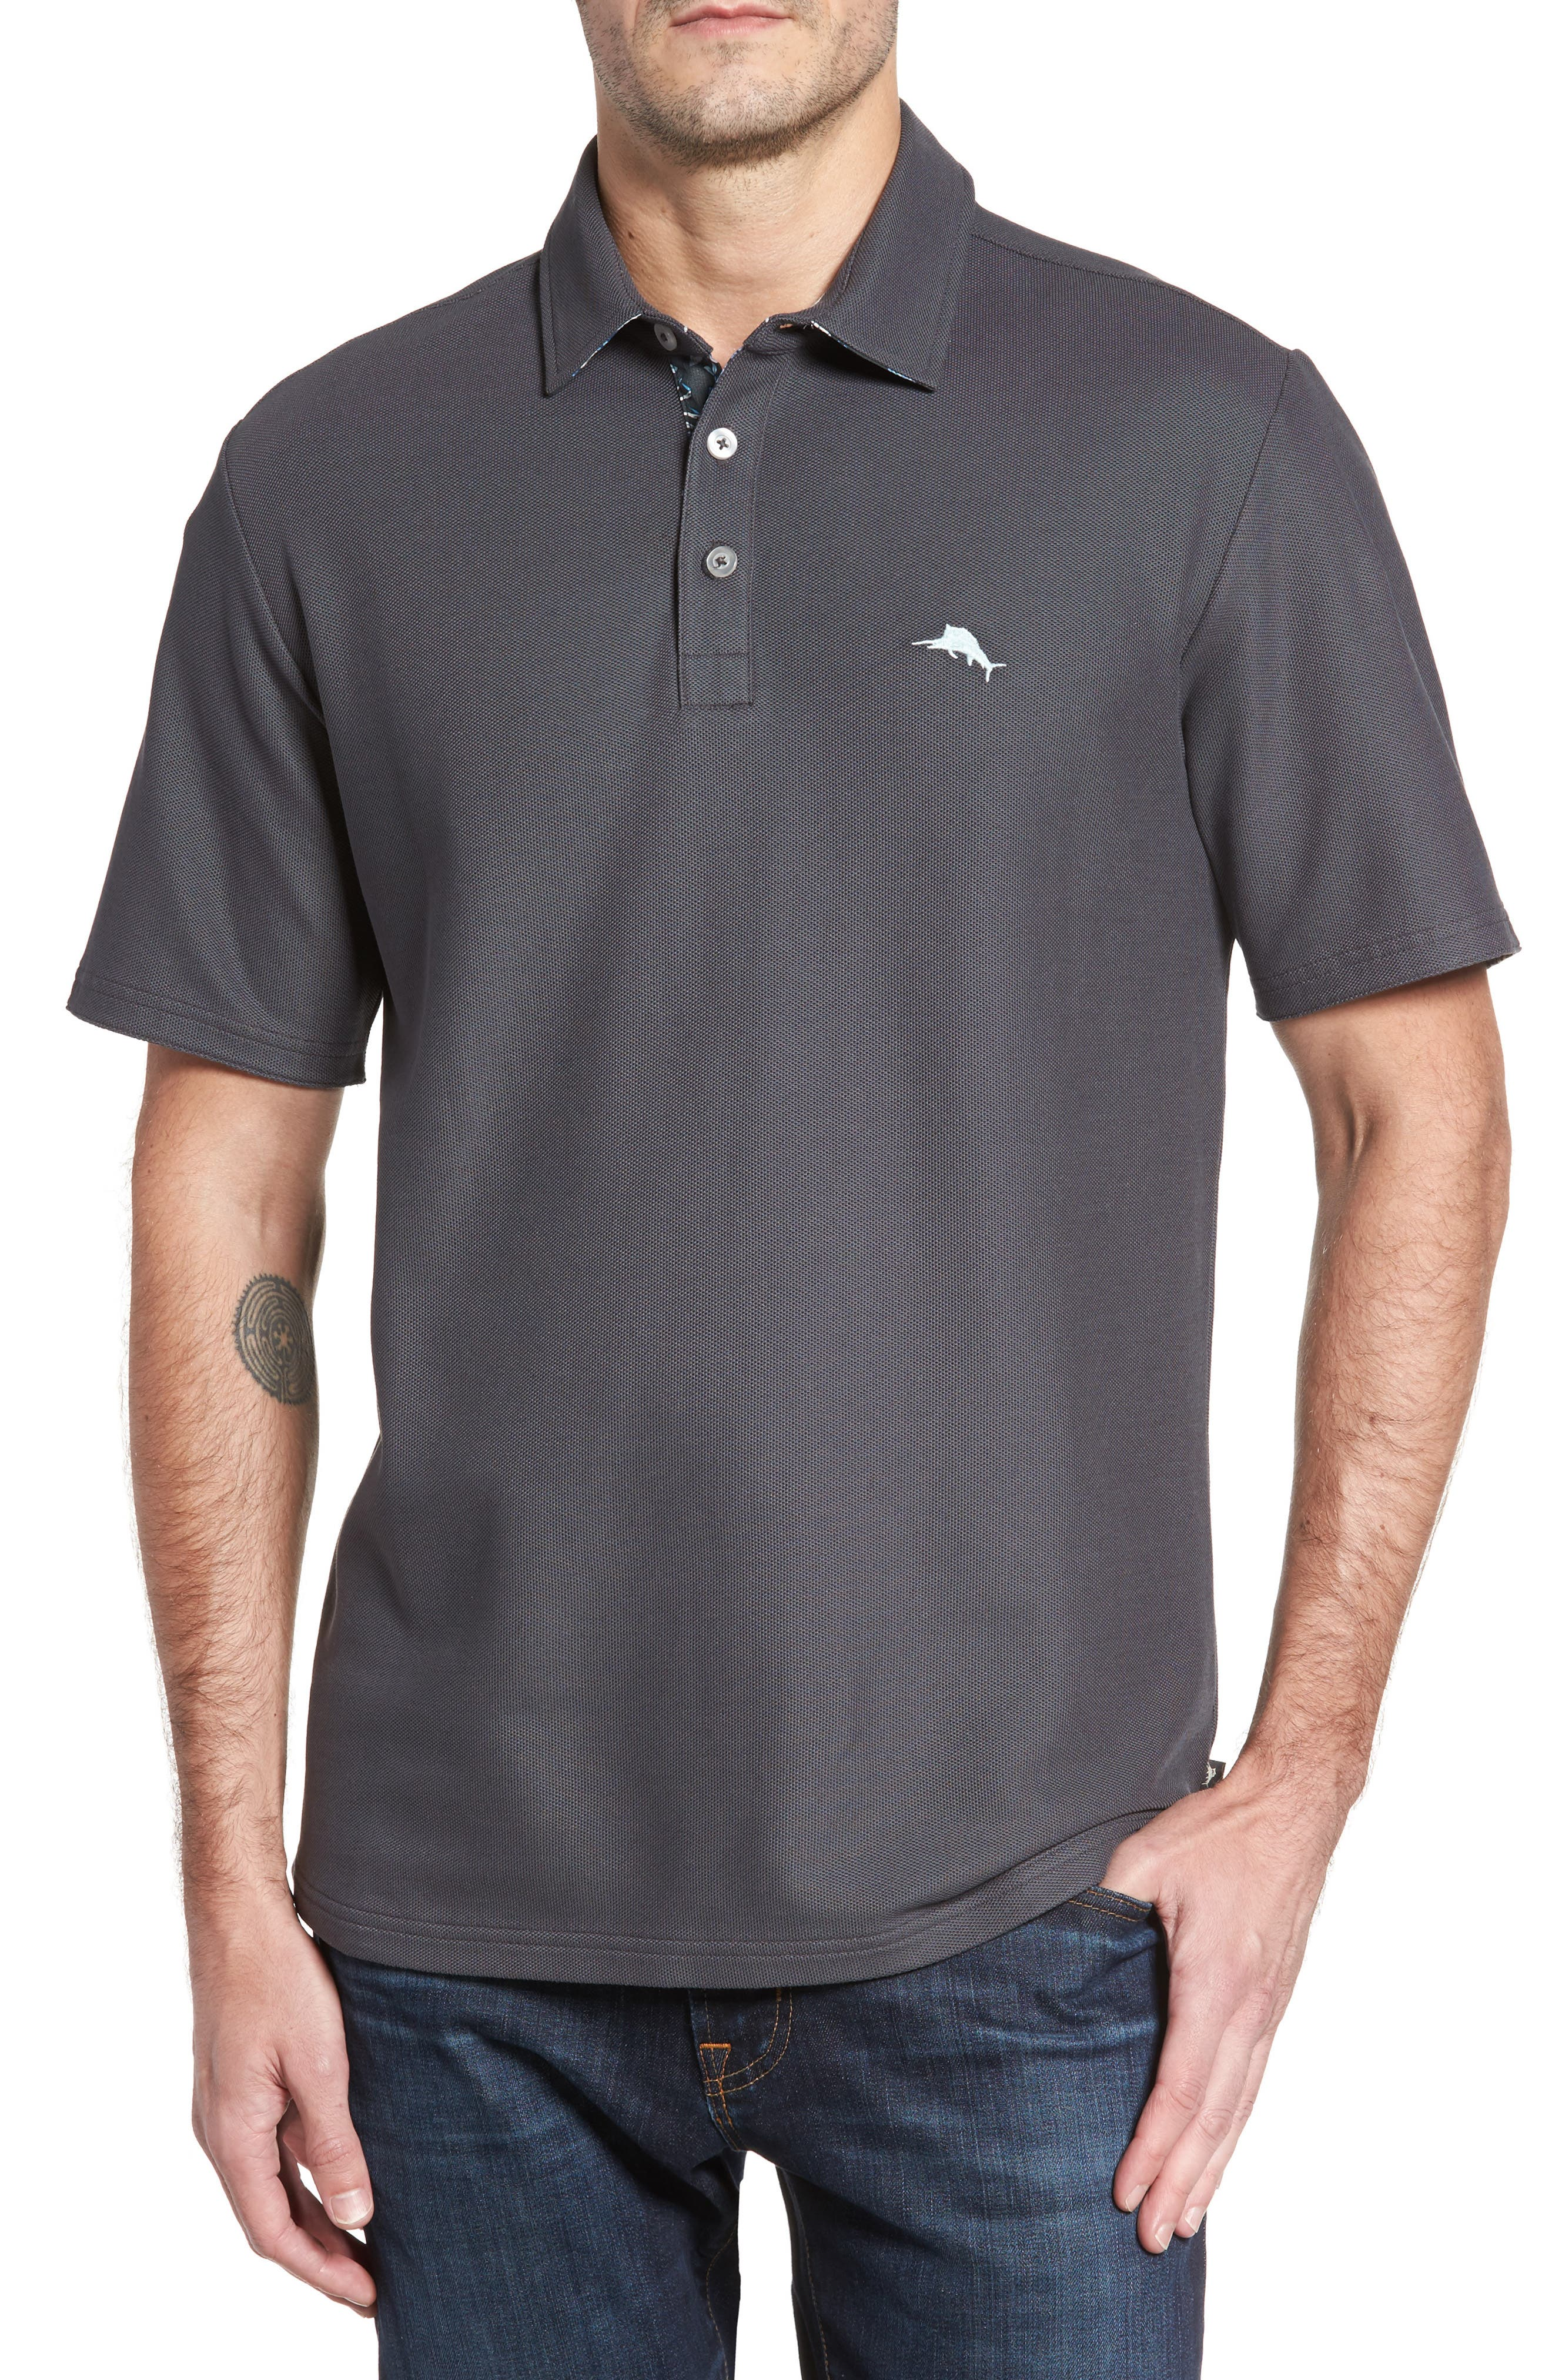 Alternate Image 1 Selected - Tommy Bahama Limited Edition Five OClock Piqué Polo